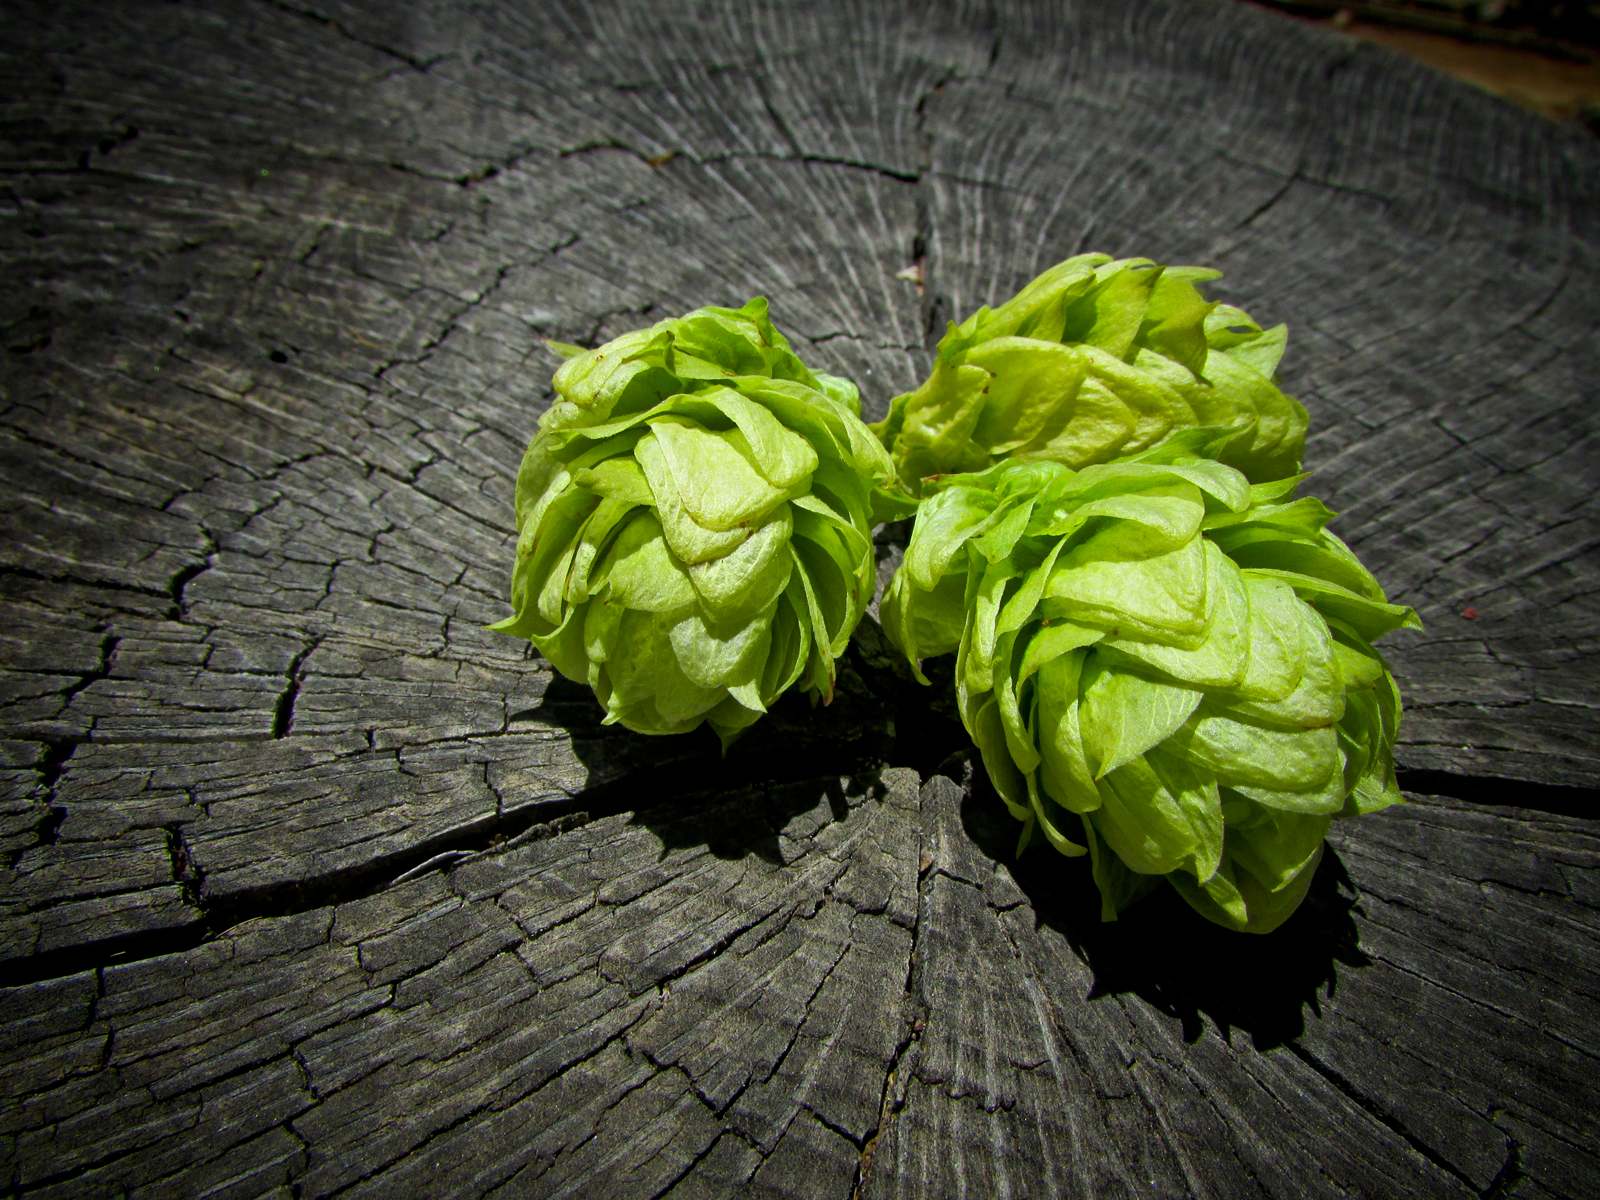 Our Hops